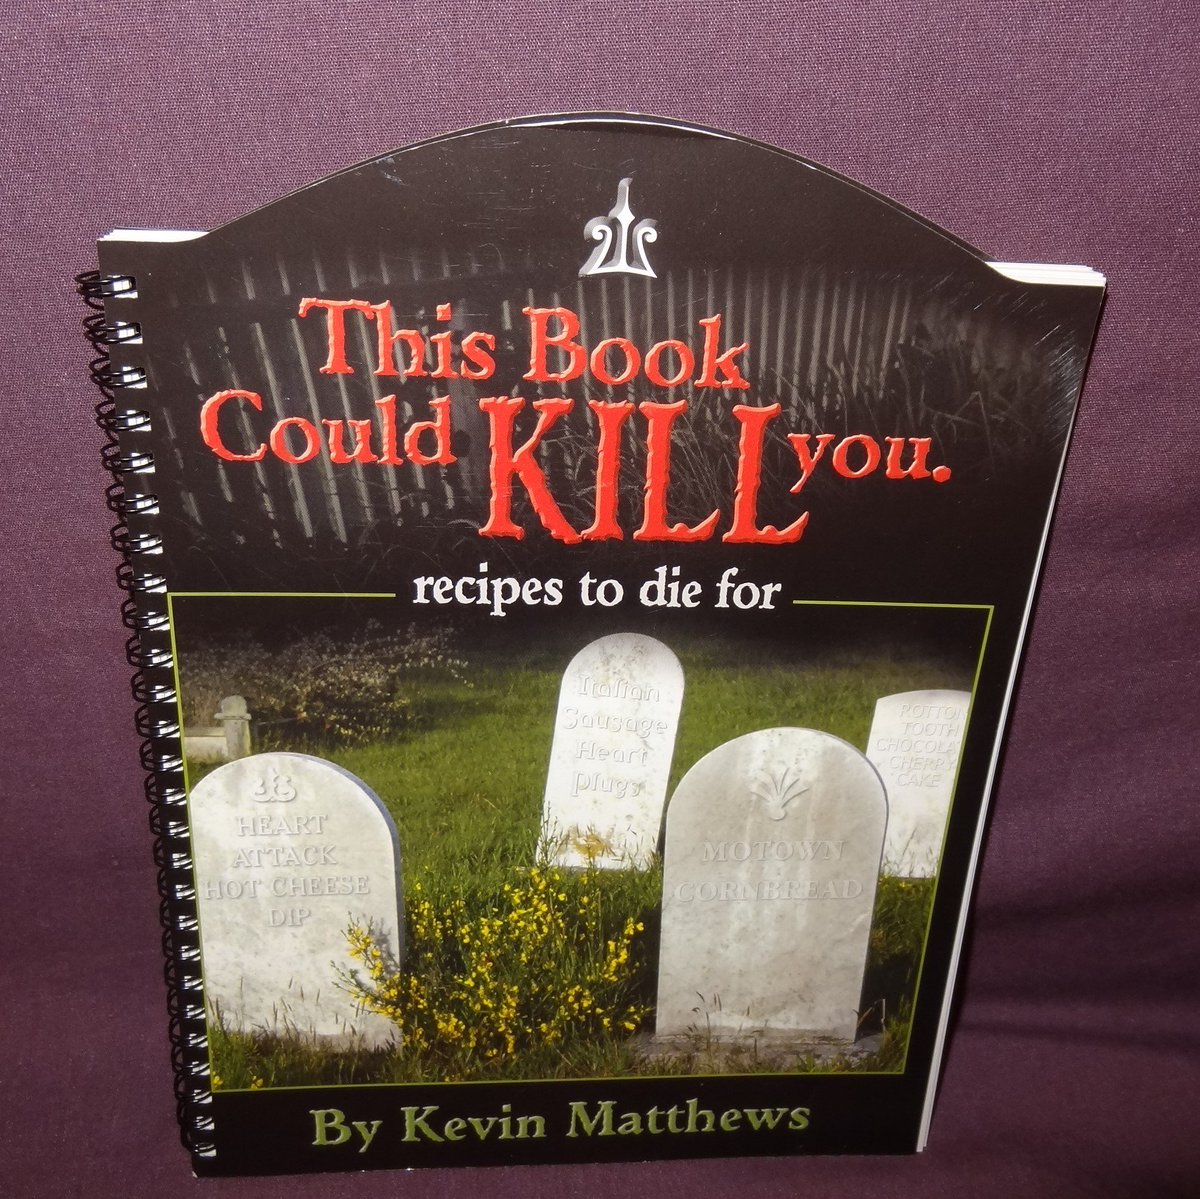 https://www. ebay.com/itm/1425444200 50 &nbsp; …  This #Book Could Kill You Recipes to Die for #Cookbook 2001 Kevin Matthews  http:// stores.ebay.com/ktefashionandc ollectibles &nbsp; …  #ebayROCteam<br>http://pic.twitter.com/GZ30x9abFO